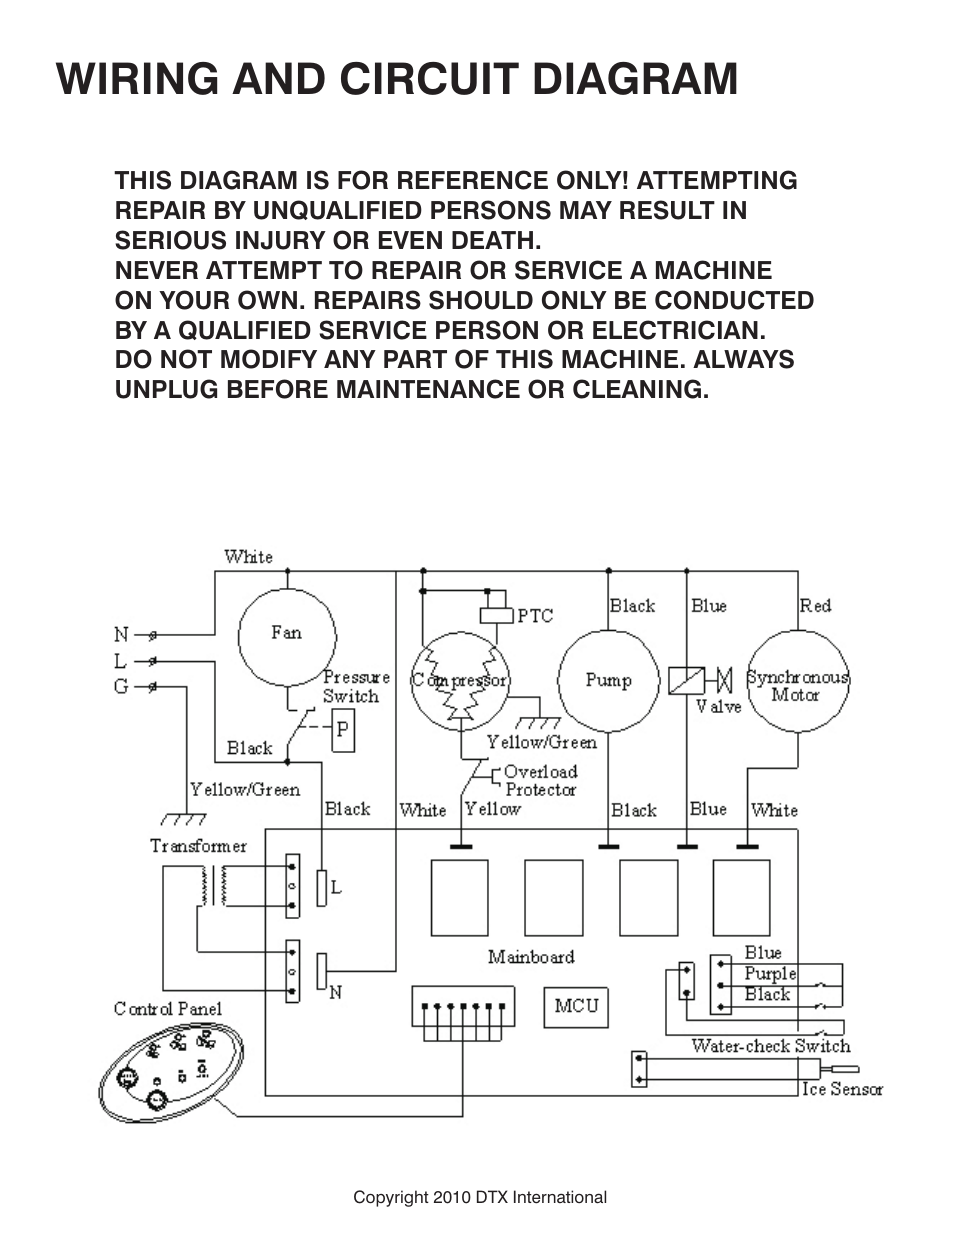 Wiring and circuit diagram | Great Northern Popcorn 6058 ... on ice maker lights, ice maker cover, ice maker troubleshooting, ice maker solenoid, ge ice maker diagram, ge refrigerator schematic diagram, ice maker capacitor, ice maker motor, sub-zero ice maker diagram, whirlpool refrigerator schematic diagram, ice maker electrical, kenmore refrigerator schematic diagram, ice maker plug diagram, ice maker for frigidaire refrigerator, ice maker help, kenmore refrigerator ice maker diagram, ice maker screw, ice maker wiring harness, ice maker hose, ice maker specifications,